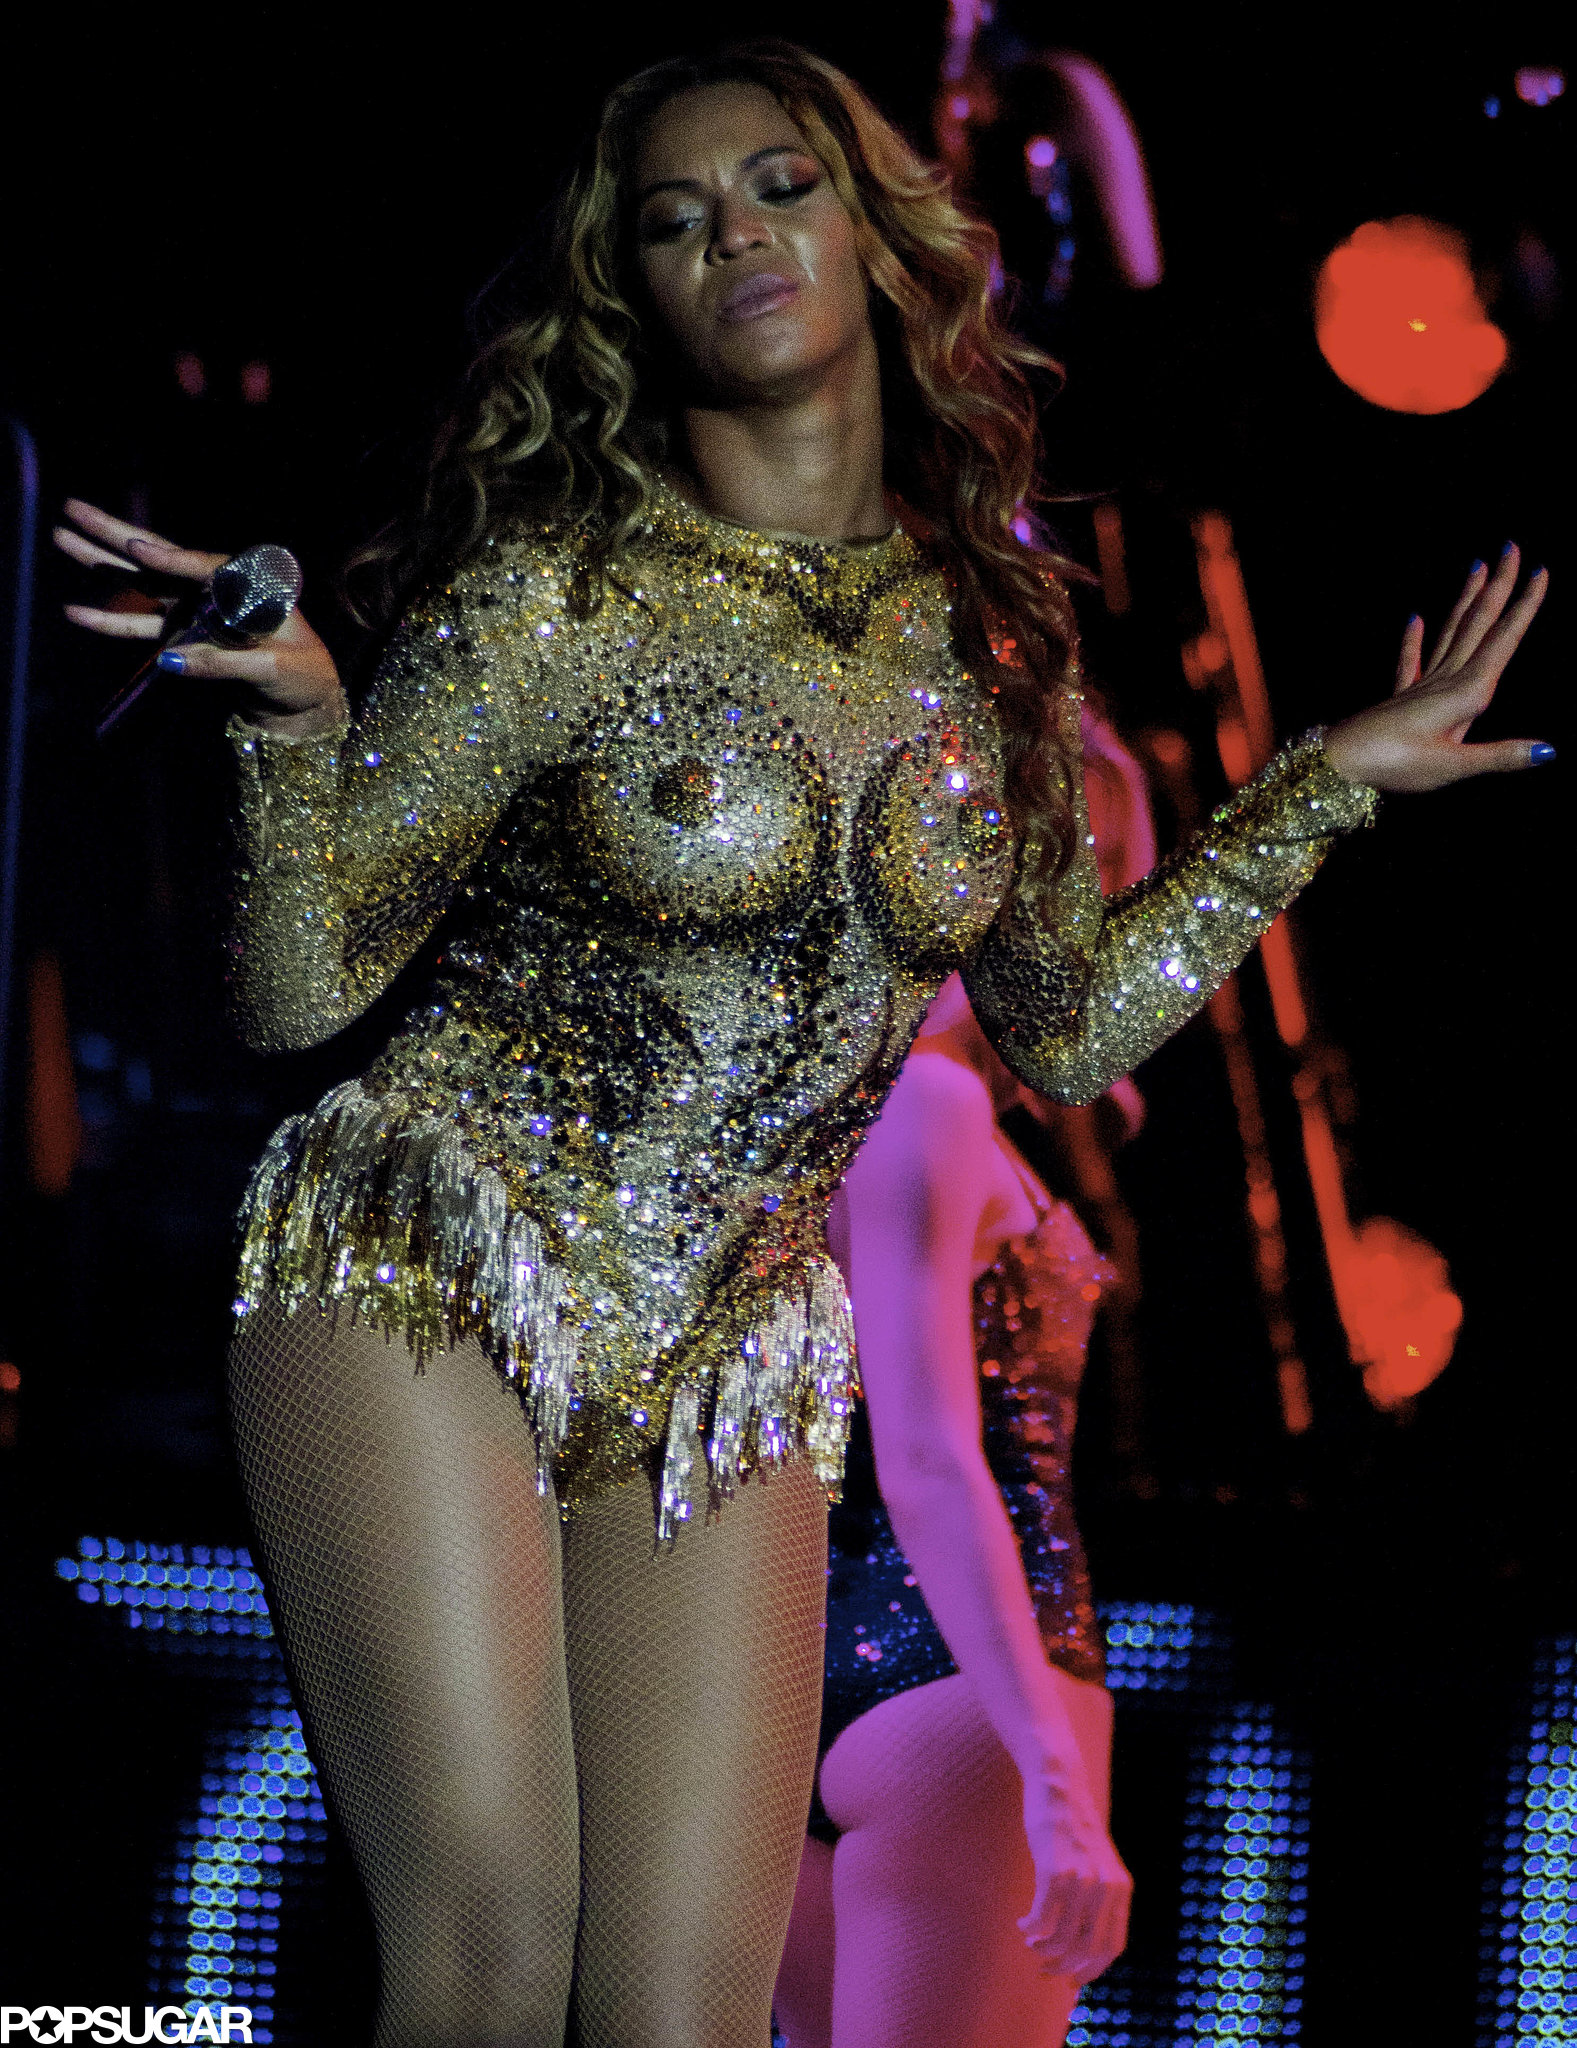 The Mrs. Carter Show World Tour kicked off with a bang at a sold-out show in Serbia on April 15.